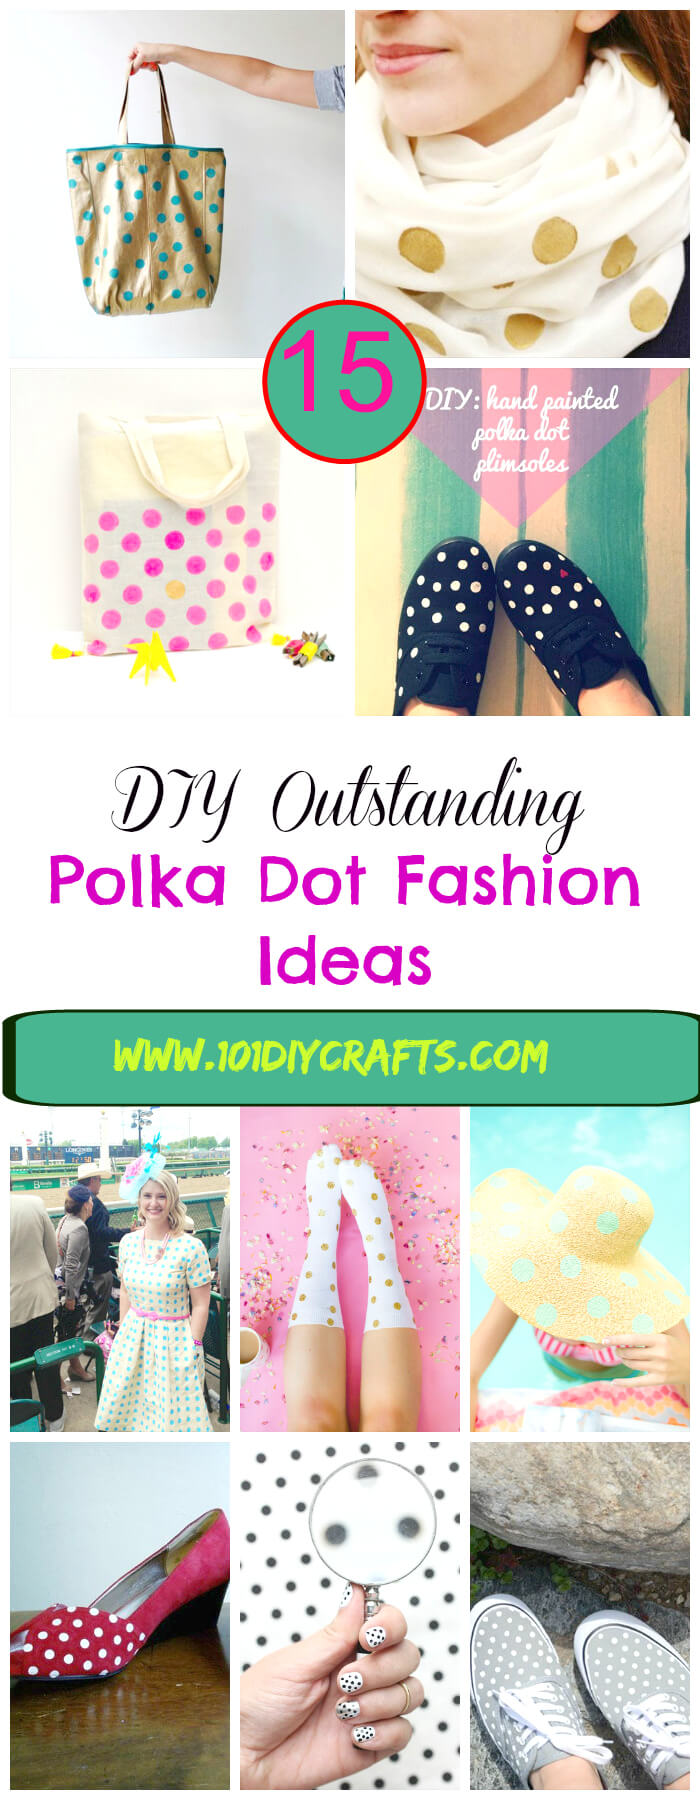 20 DIY Outclass Polka Dot Fashion Ideas